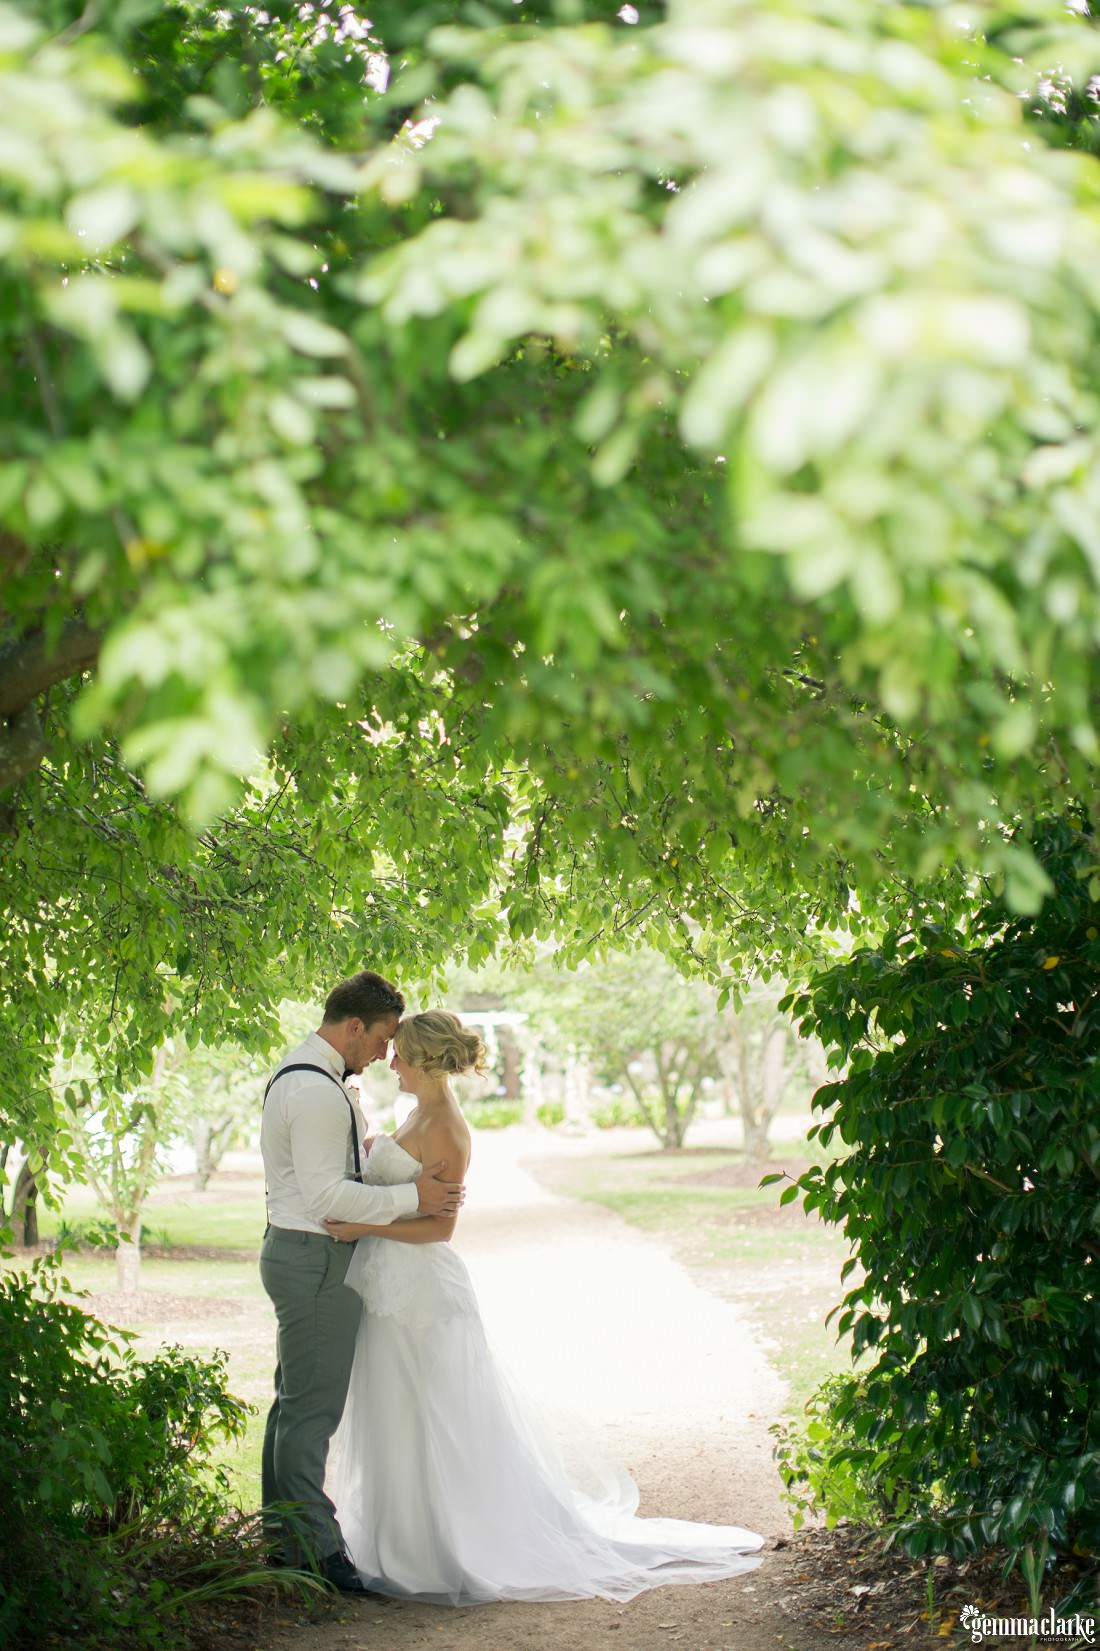 Alicia and James' Vintage Wedding at Sylvan Glen